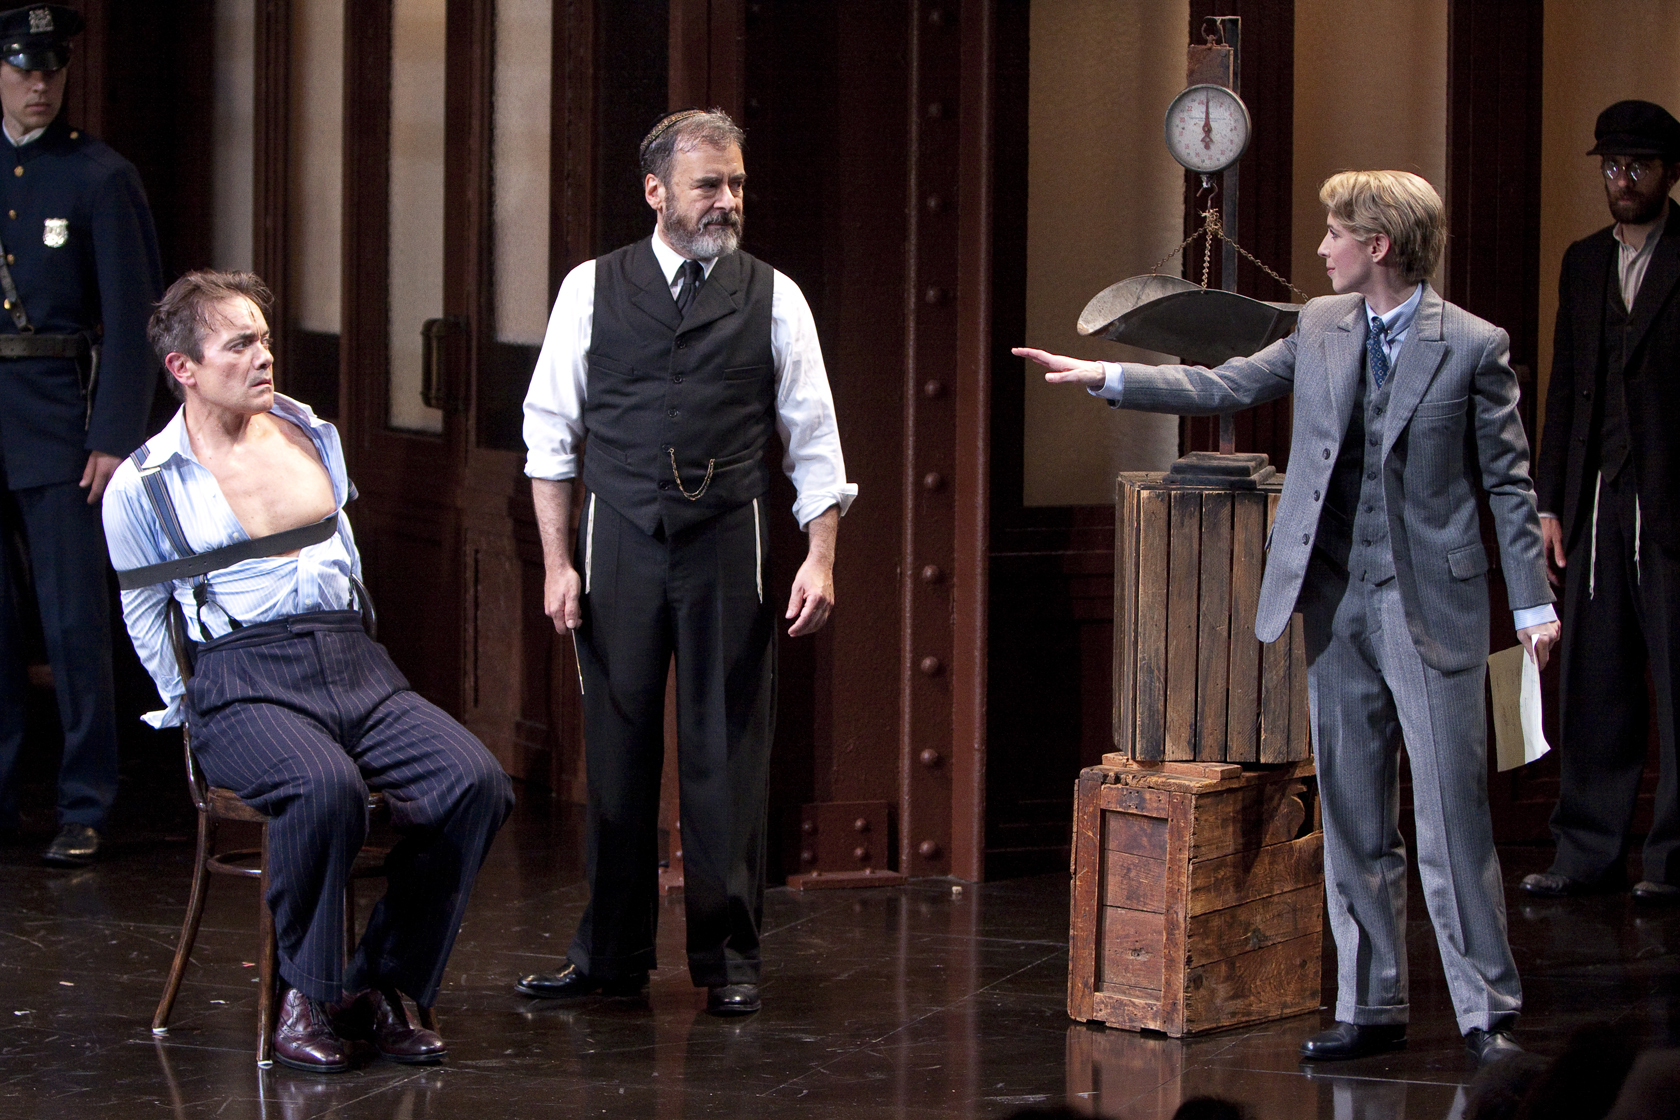 Derek Smith as Antonio, Mark Nelson as Shylock and Julia Coffey as Portia in the Shakespeare Theatre Company's production of The Merchant of Venice, directed by Ethan McSweeny. Photo by Scott Suchman.